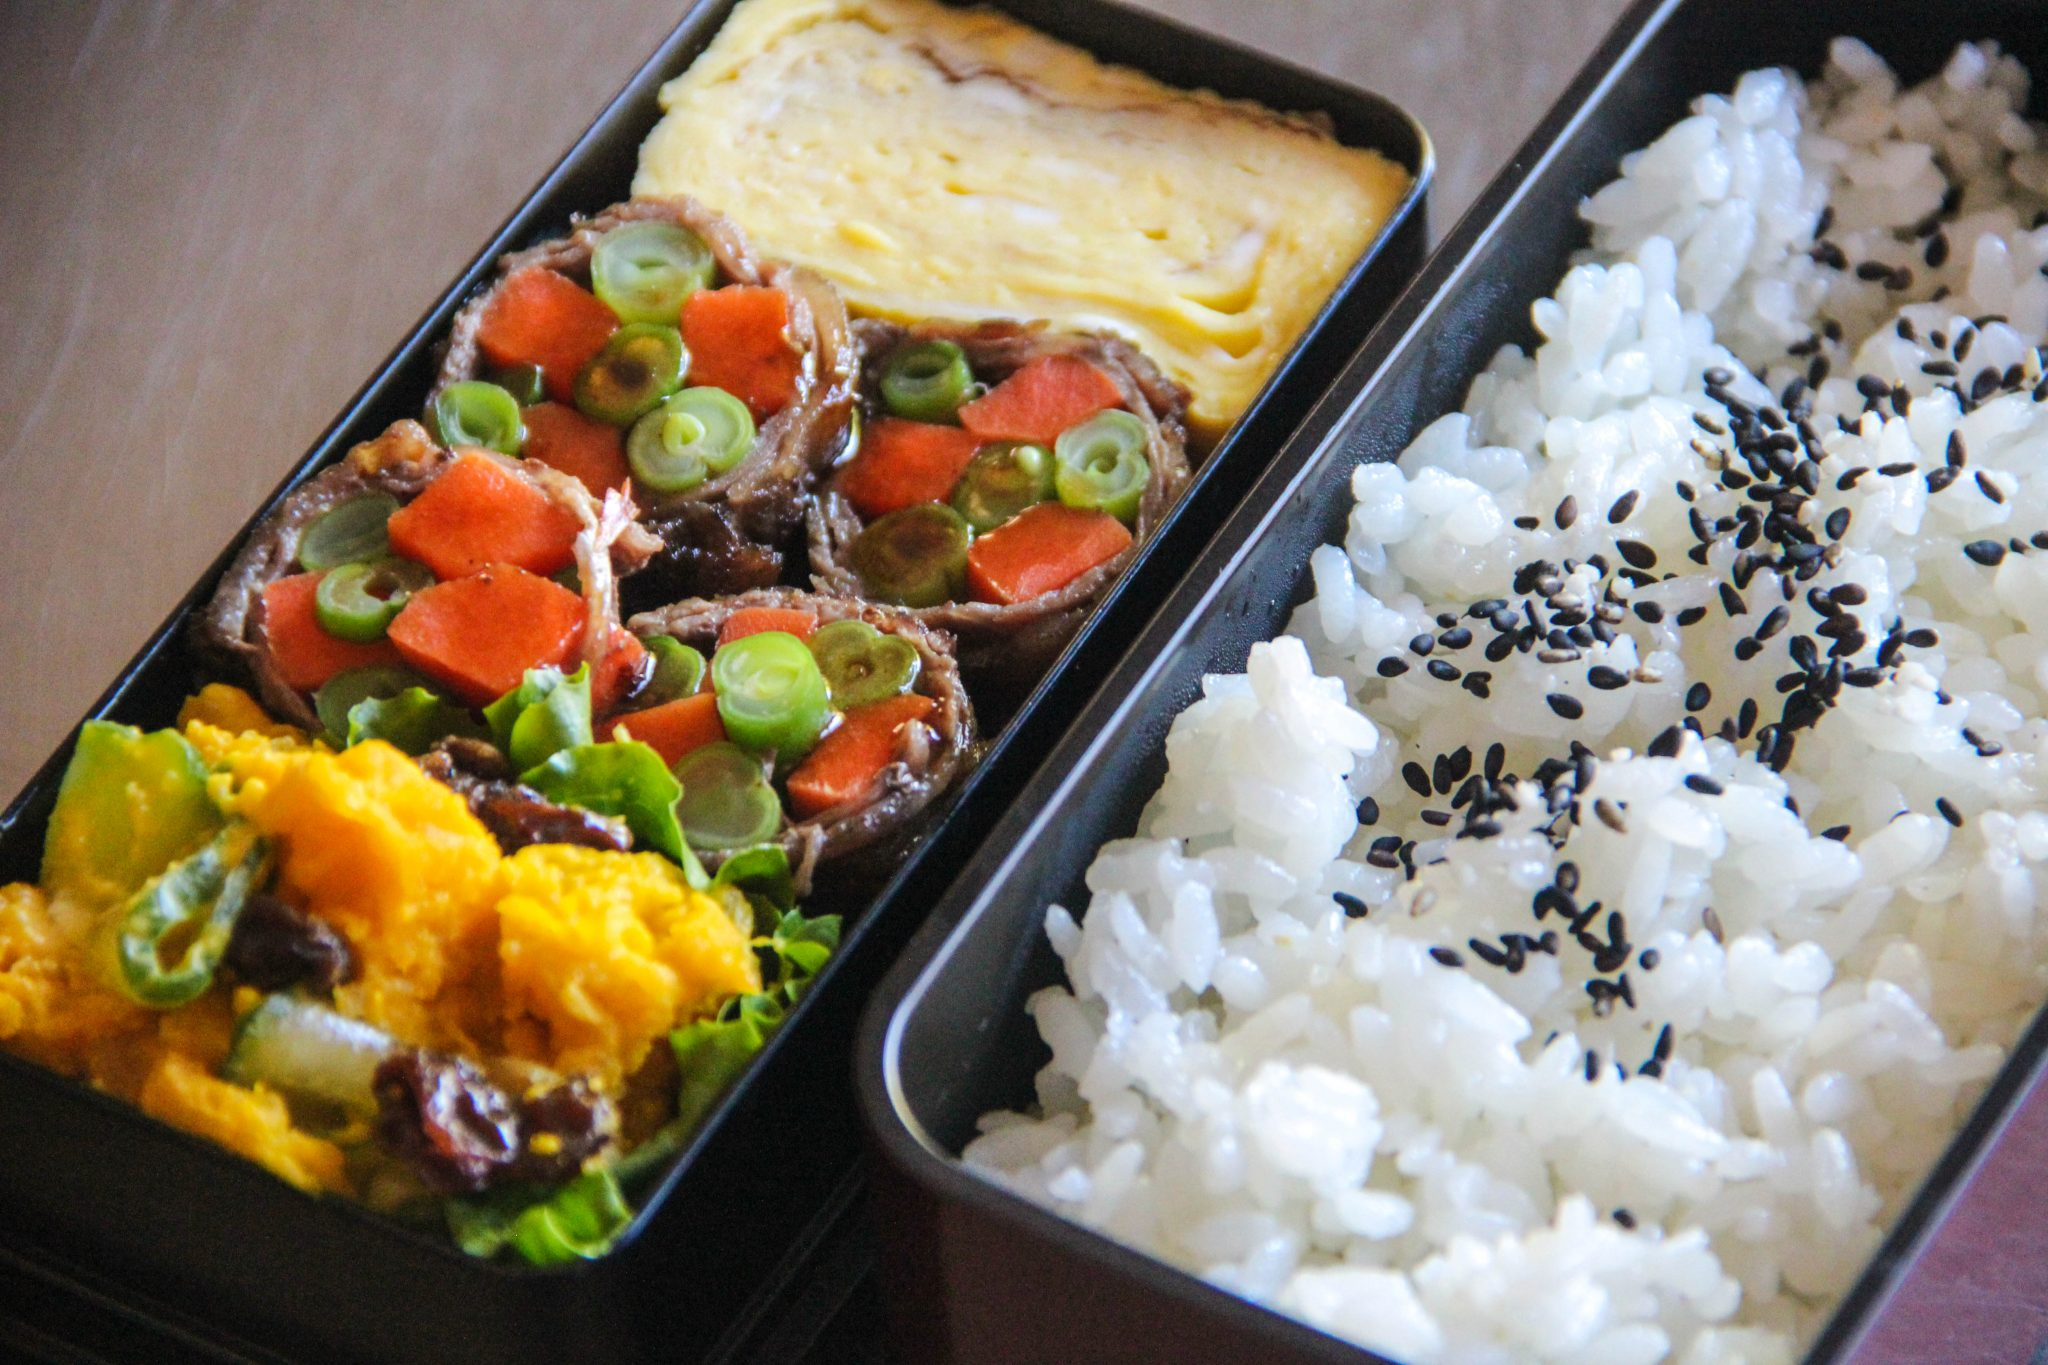 Bento Lunch Menu 3 – Japanese Cooking 101